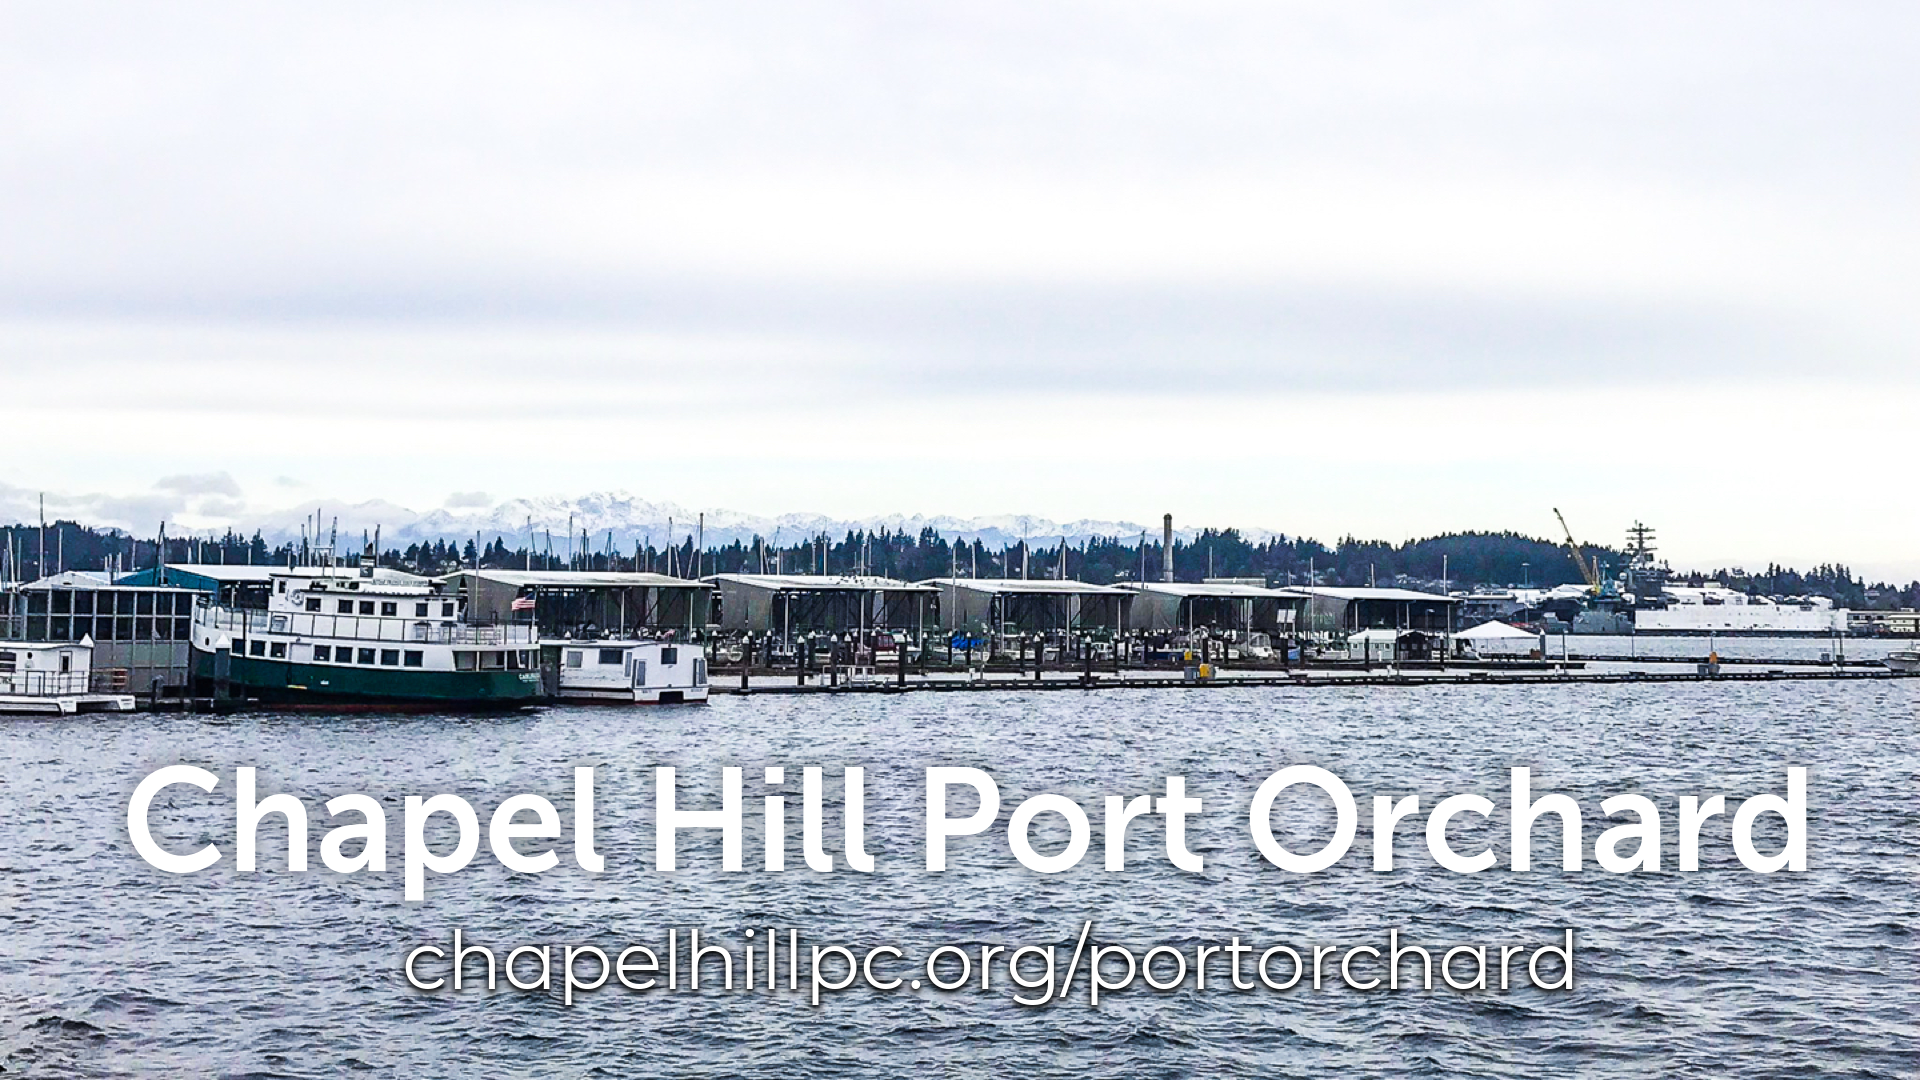 Chapel Hill Port Orchard Easter Service